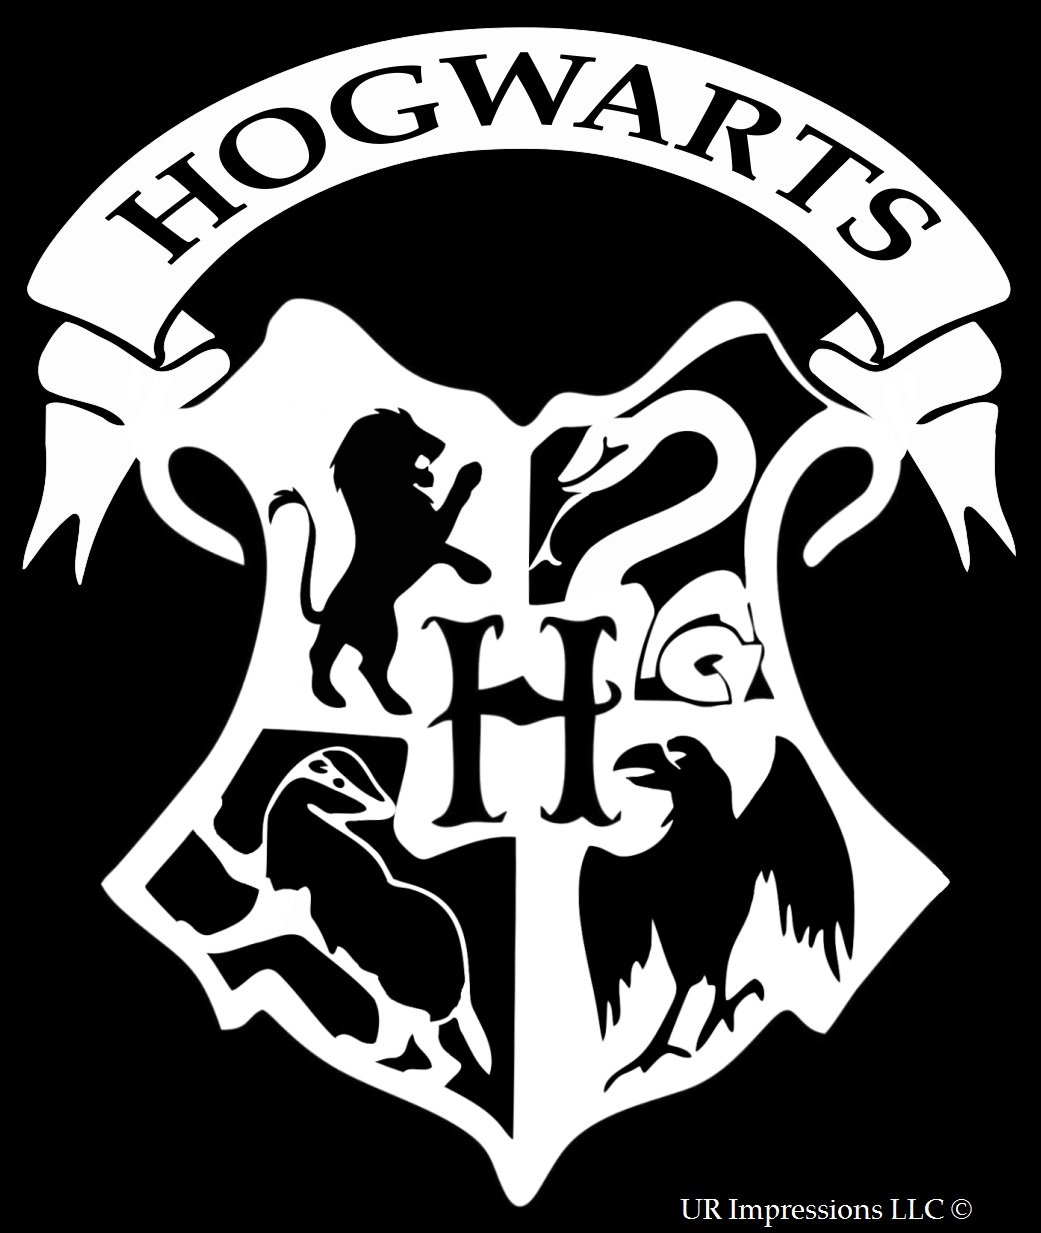 UR Impressions Hogwarts Crest Decal Vinyl Sticker Graphics for Car Truck SUV Van Wall Window Laptop|White|6.6 X 5.5 Inch|URI135